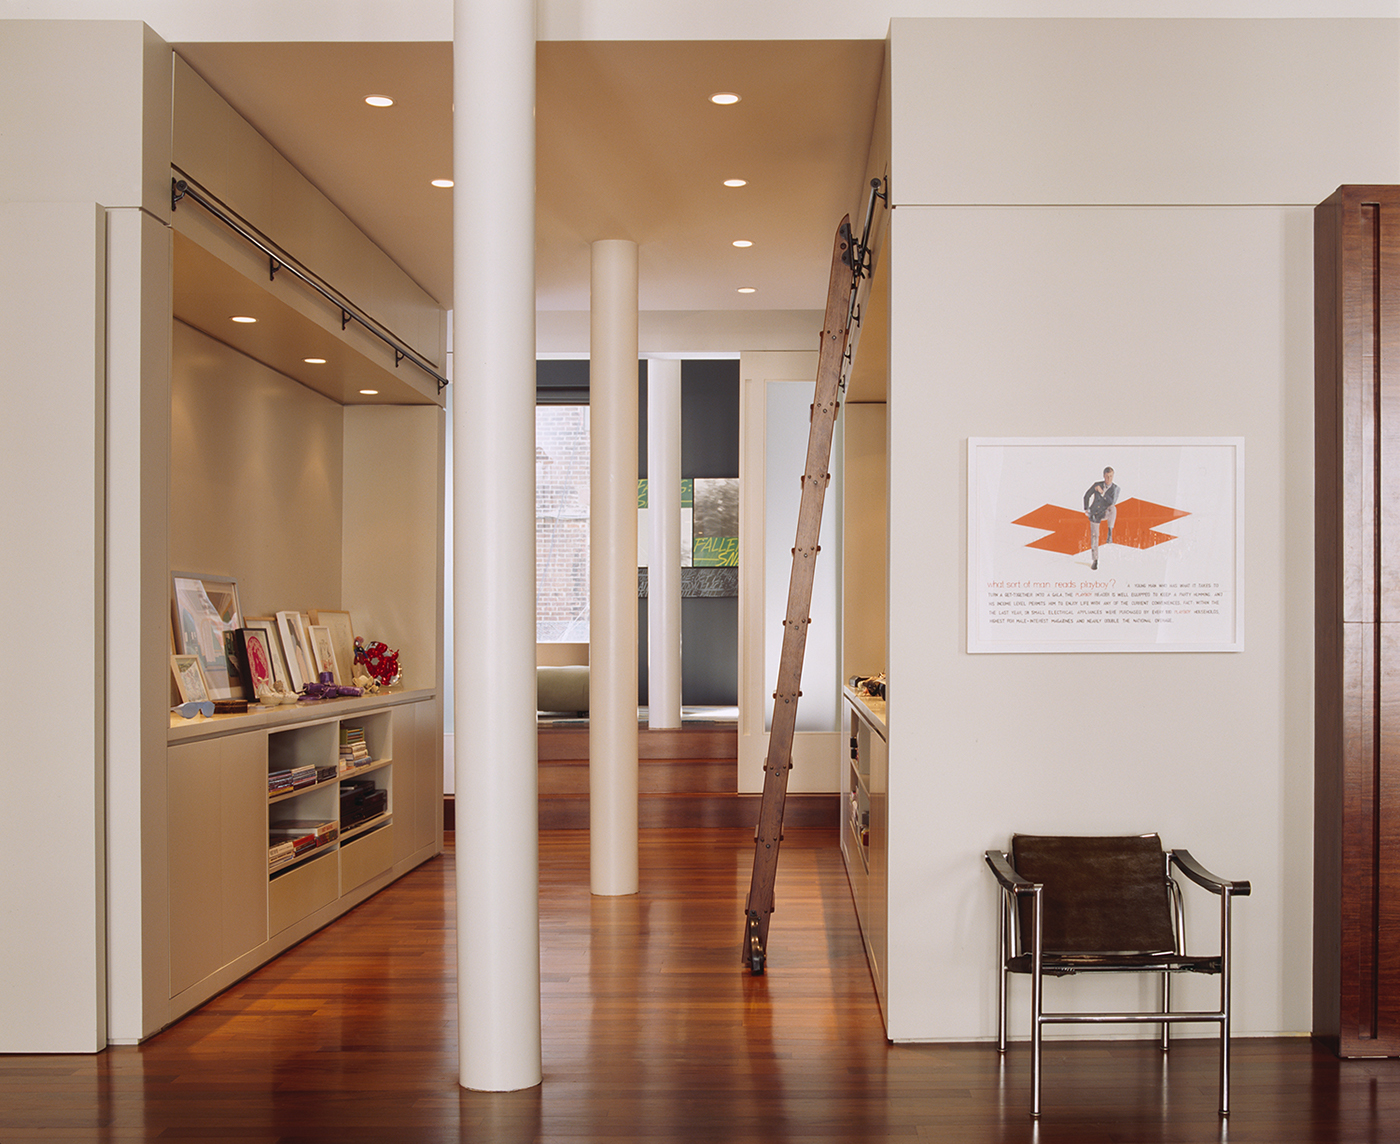 tribeca,LOFT,apartment,residential,Residence,Natural Light,midcentury,MID-CENTURY,contemporary art,Art Display,Art collection,Gallery Wall,New York,architectural,Custom